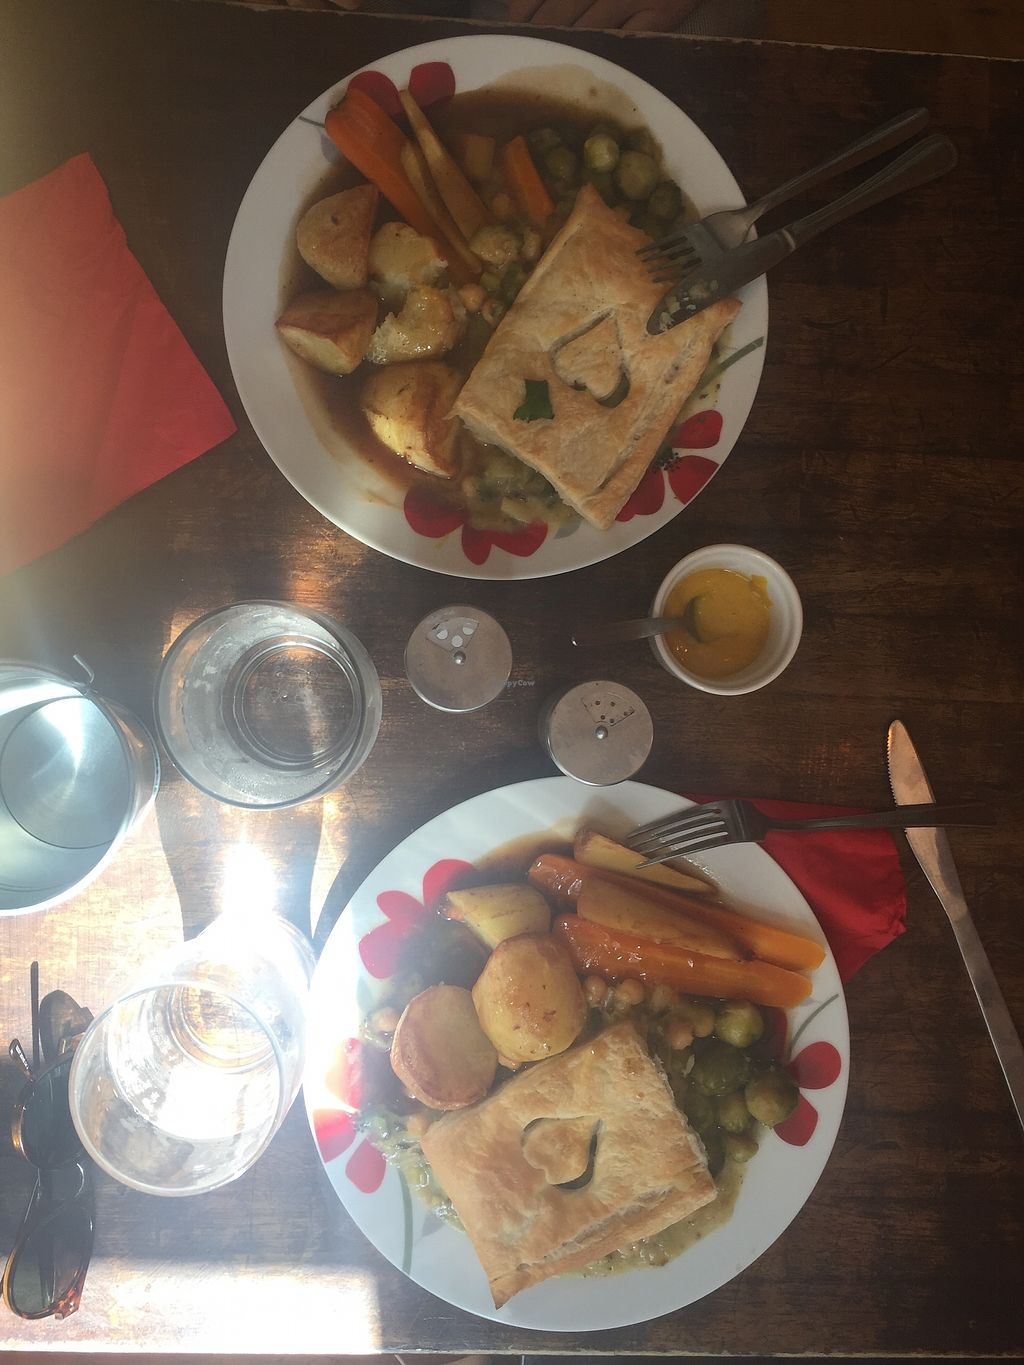 """Photo of Vegan Food Pimp - Pop-up  by <a href=""""/members/profile/alice28"""">alice28</a> <br/>Vegan roast <br/> March 1, 2018  - <a href='/contact/abuse/image/82726/365381'>Report</a>"""